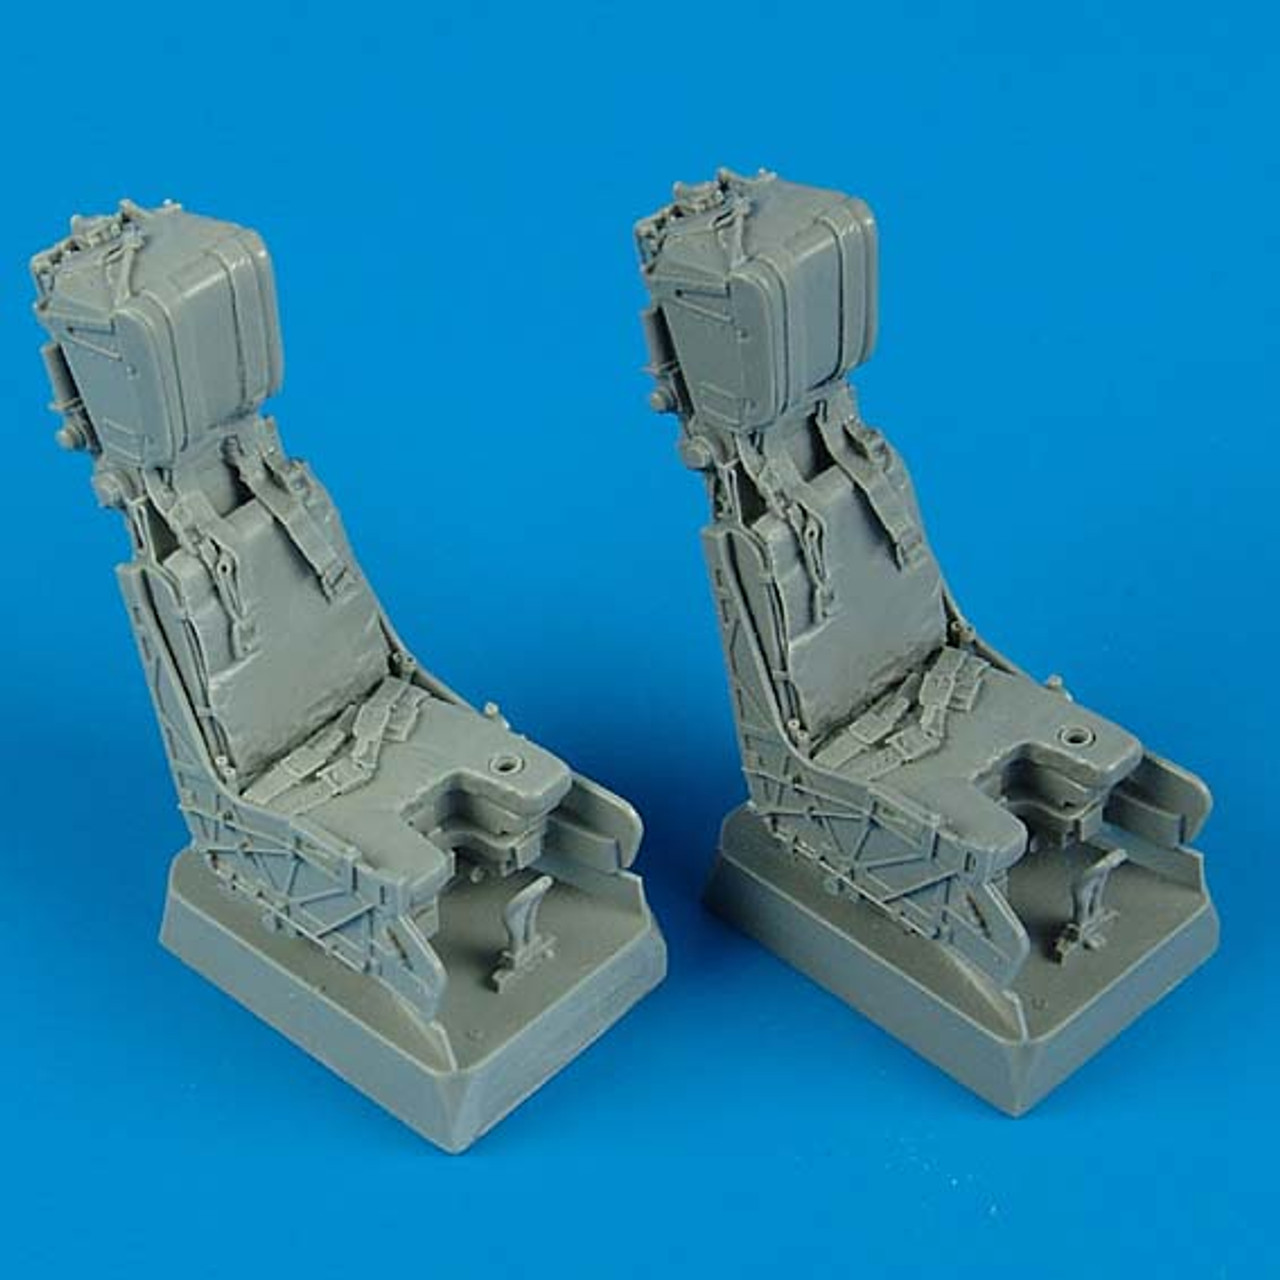 QBT32028 1:32 Quickboost F-18D Hornet Ejection Seats with Seatbelts #32028